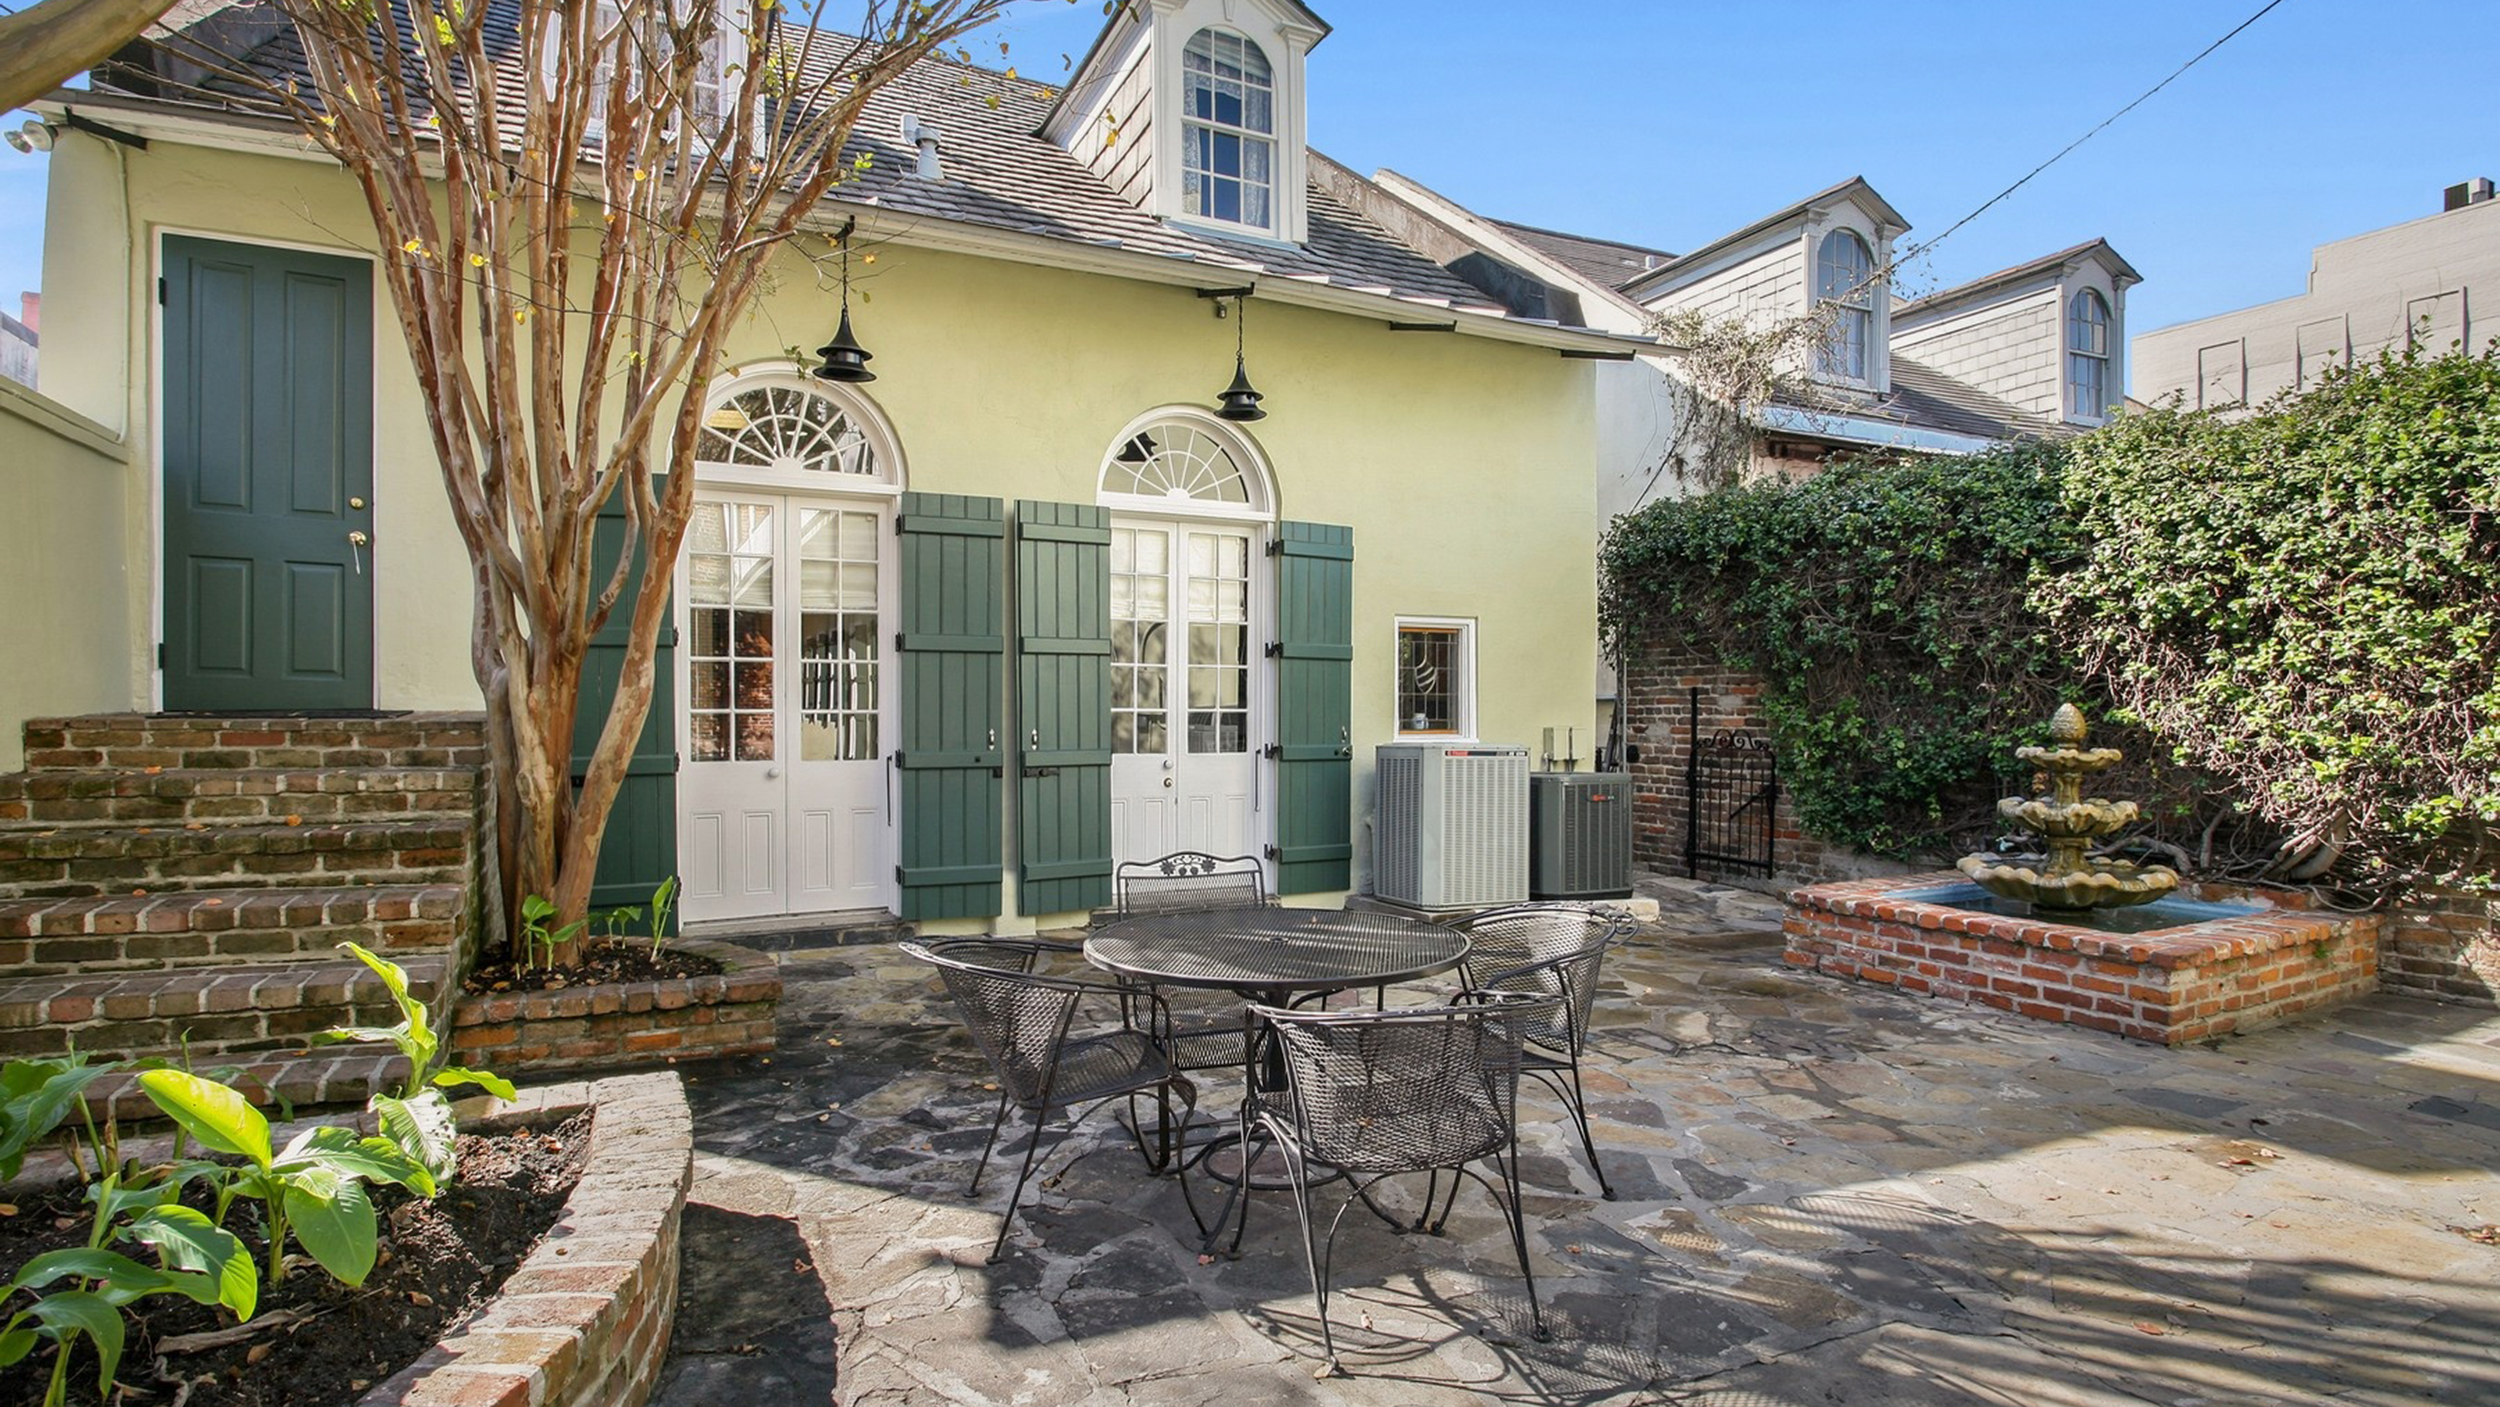 New Orleans Cottage From The 1800s Hits The Market